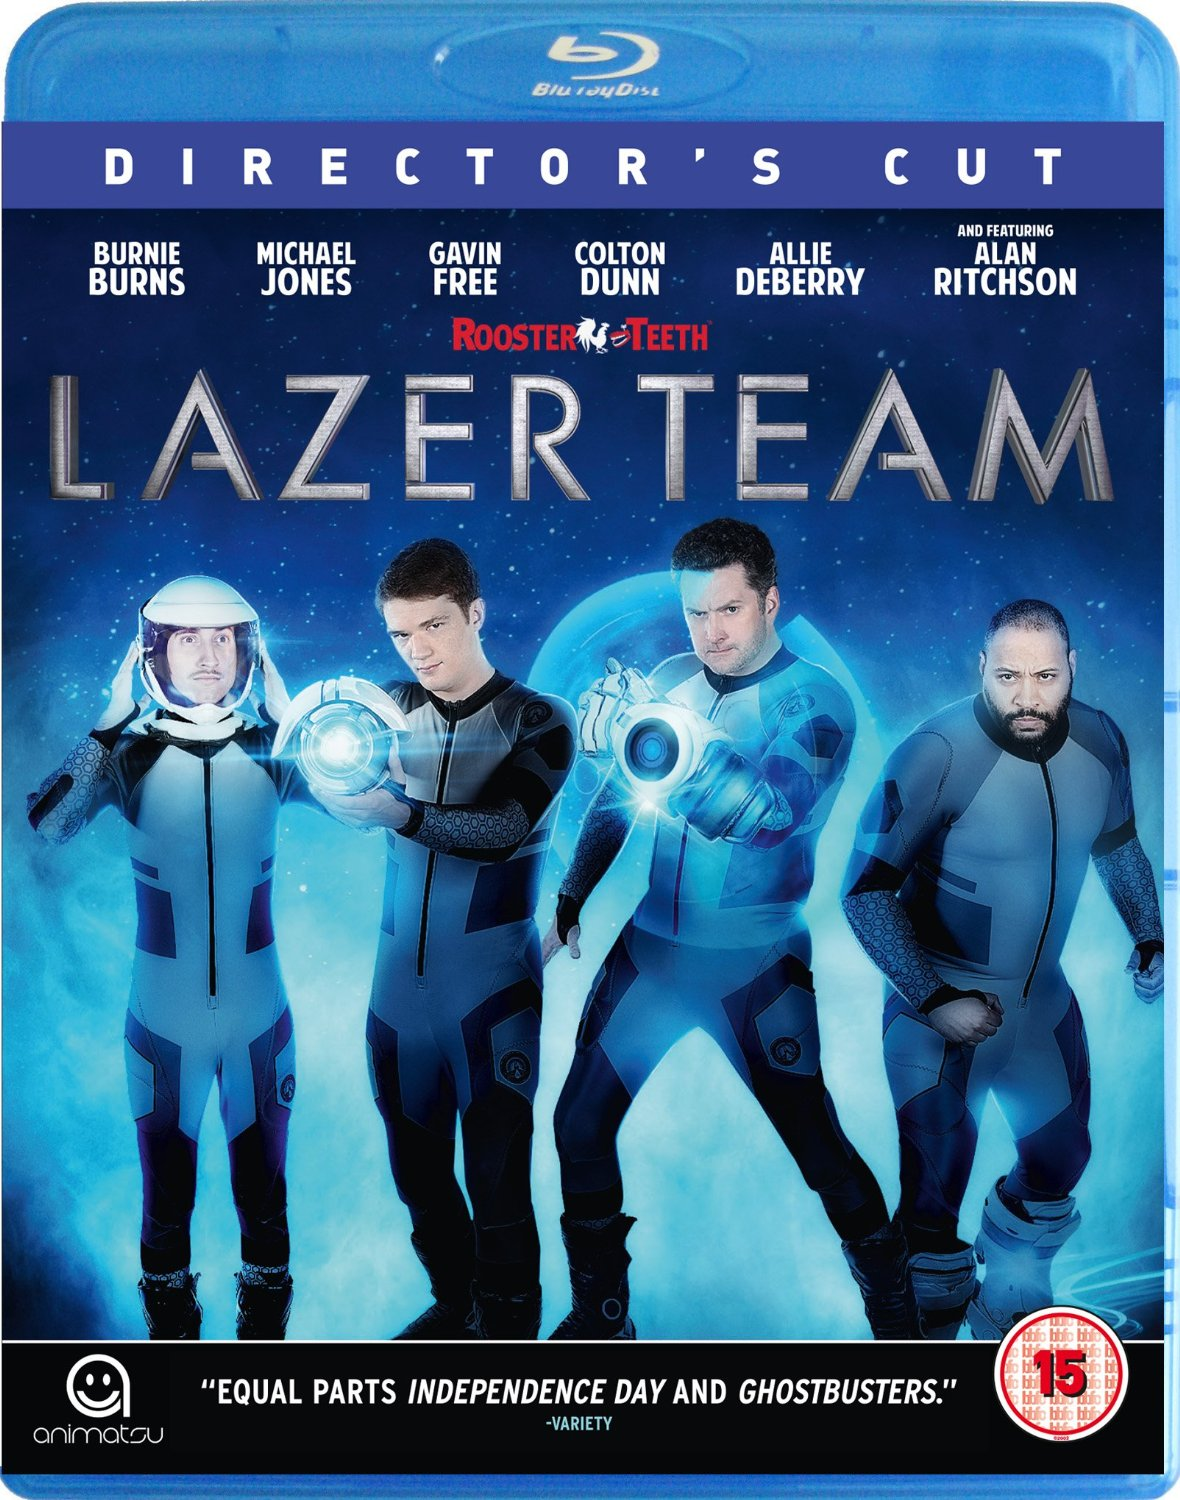 Lazer Team Blu-ray review: Earth's amatuer heroes